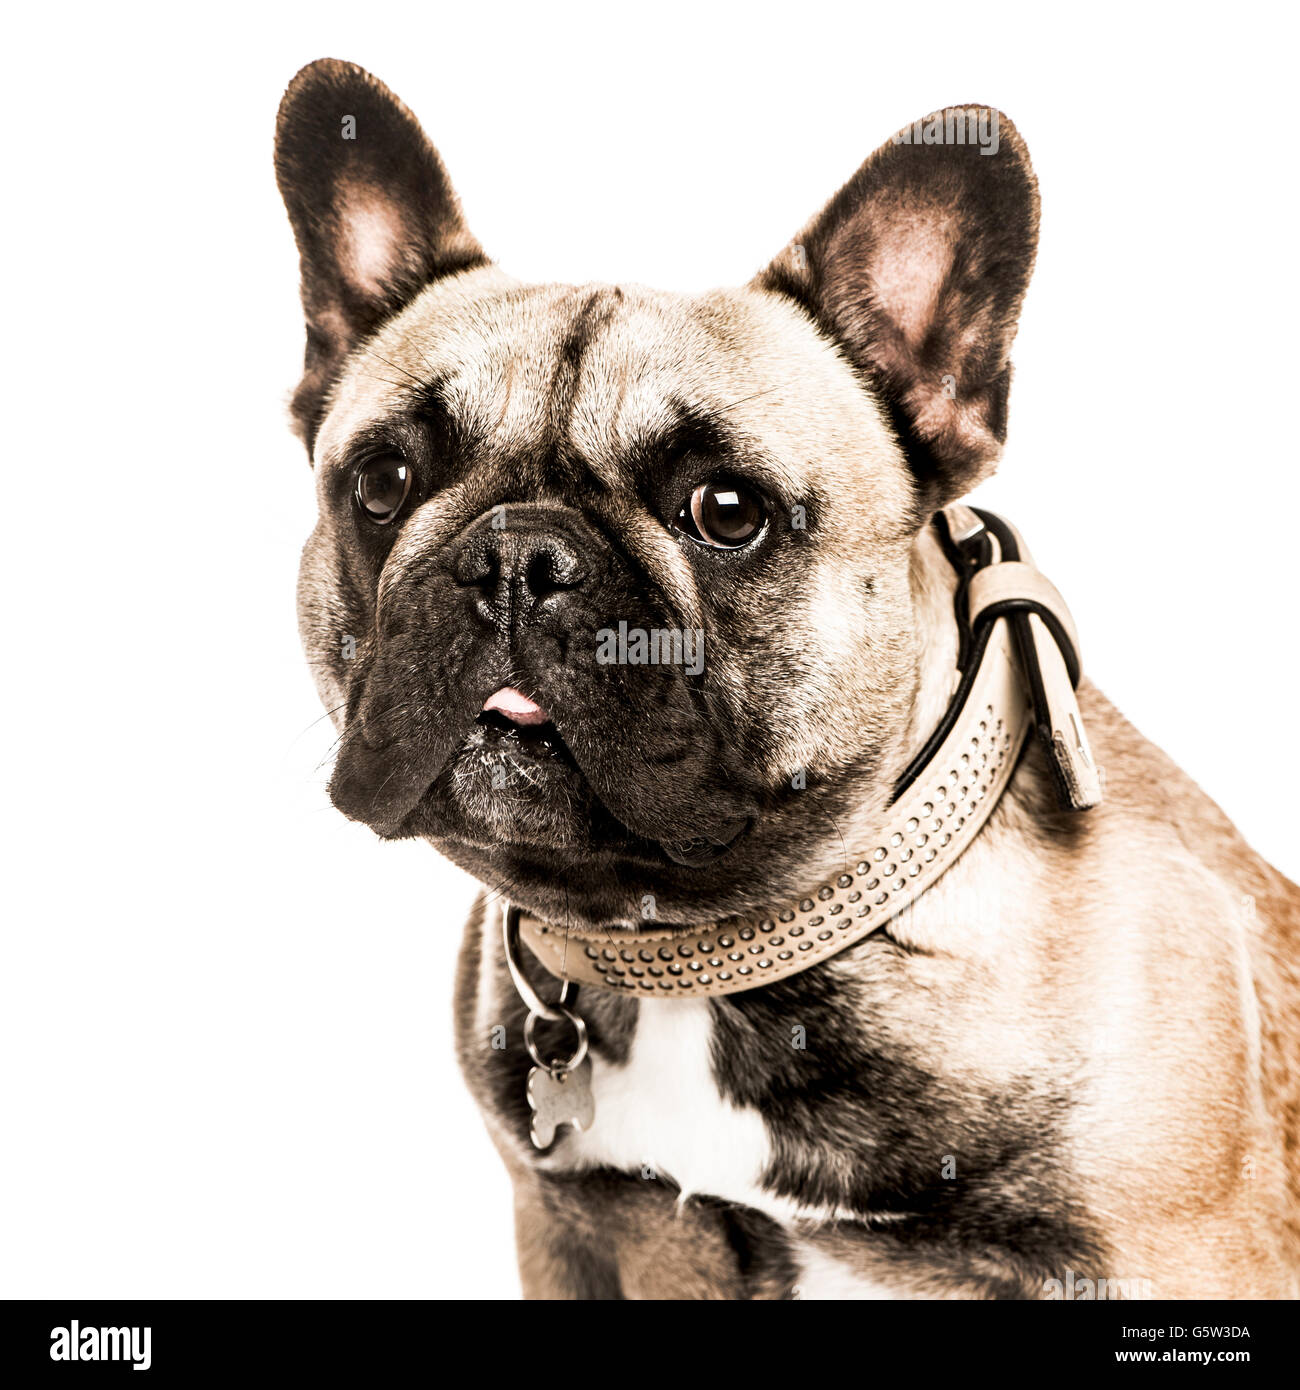 Close-up of a French Bulldog sticking the tongue out and looking at the camera, isolated on white - Stock Image